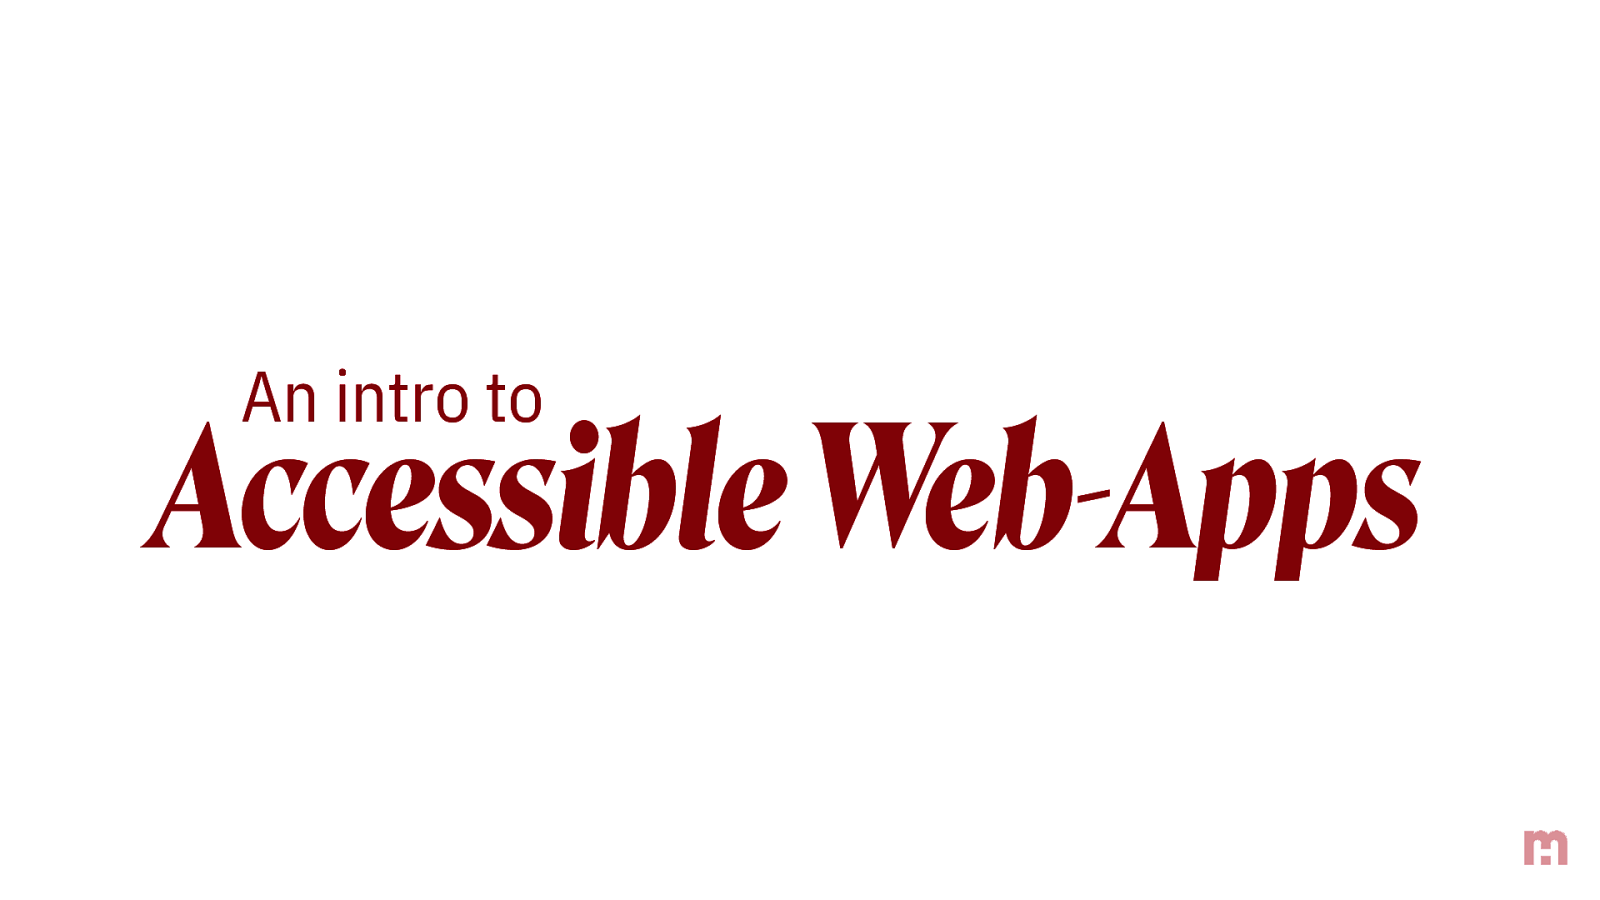 An intro to Accessible Web-Apps